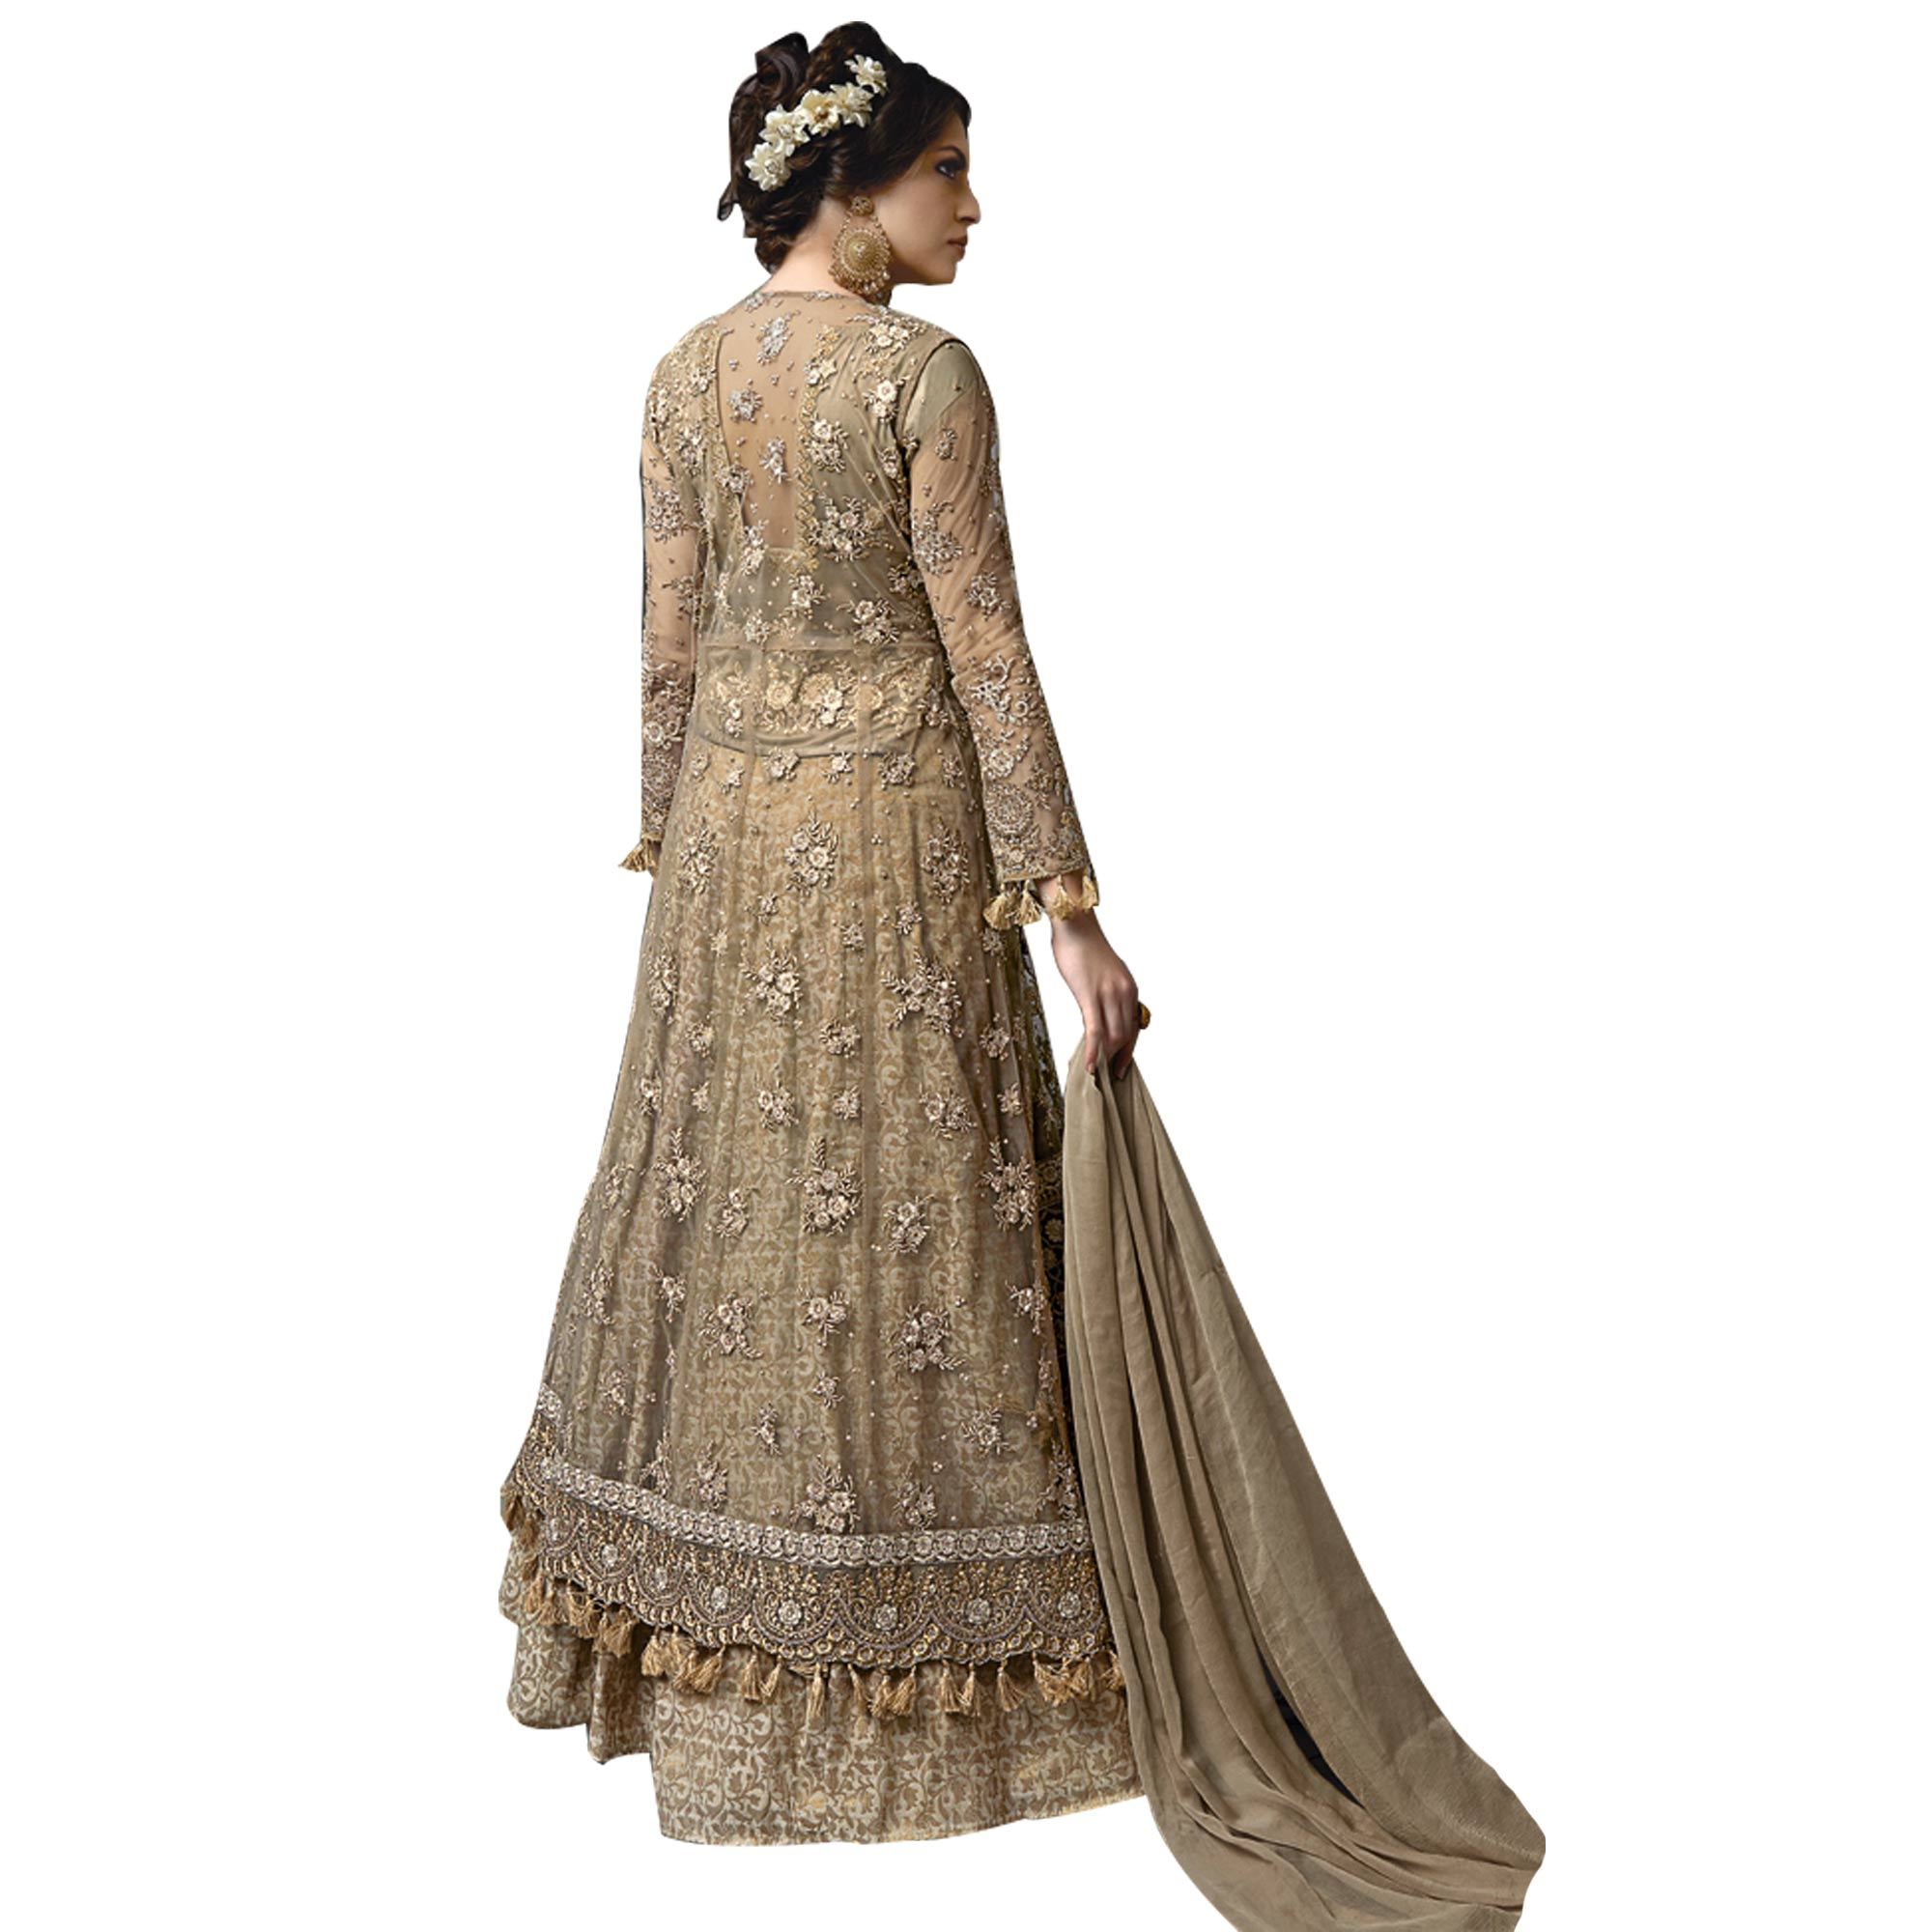 Chic Olive Green Colored Partywear Designer Embroidered Netted Koti Lehenga Choli